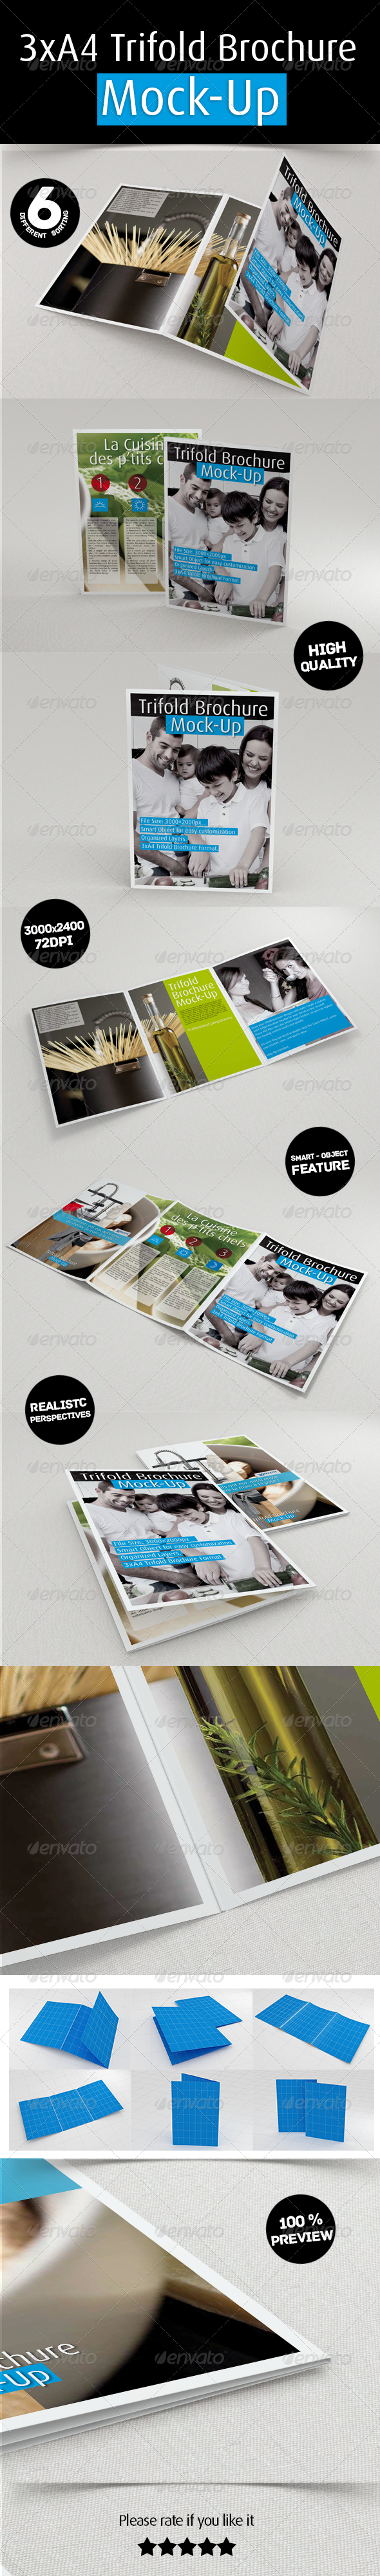 3xA4 Trifold Brochure Mockup - Product Mock-Ups Graphics